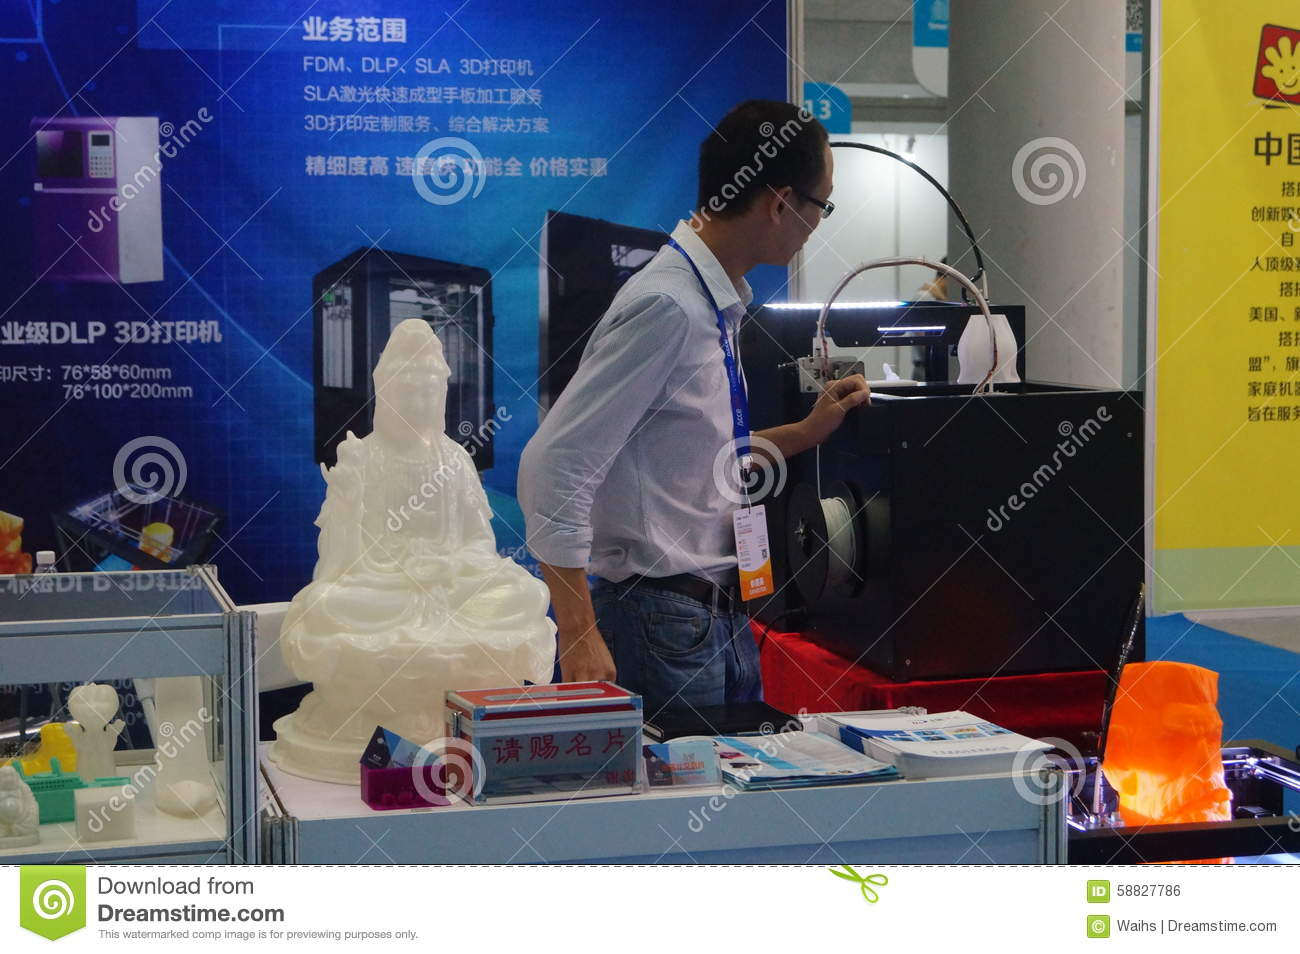 D Printing Exhibition China : D printing applications and facilities and equipment exhibition